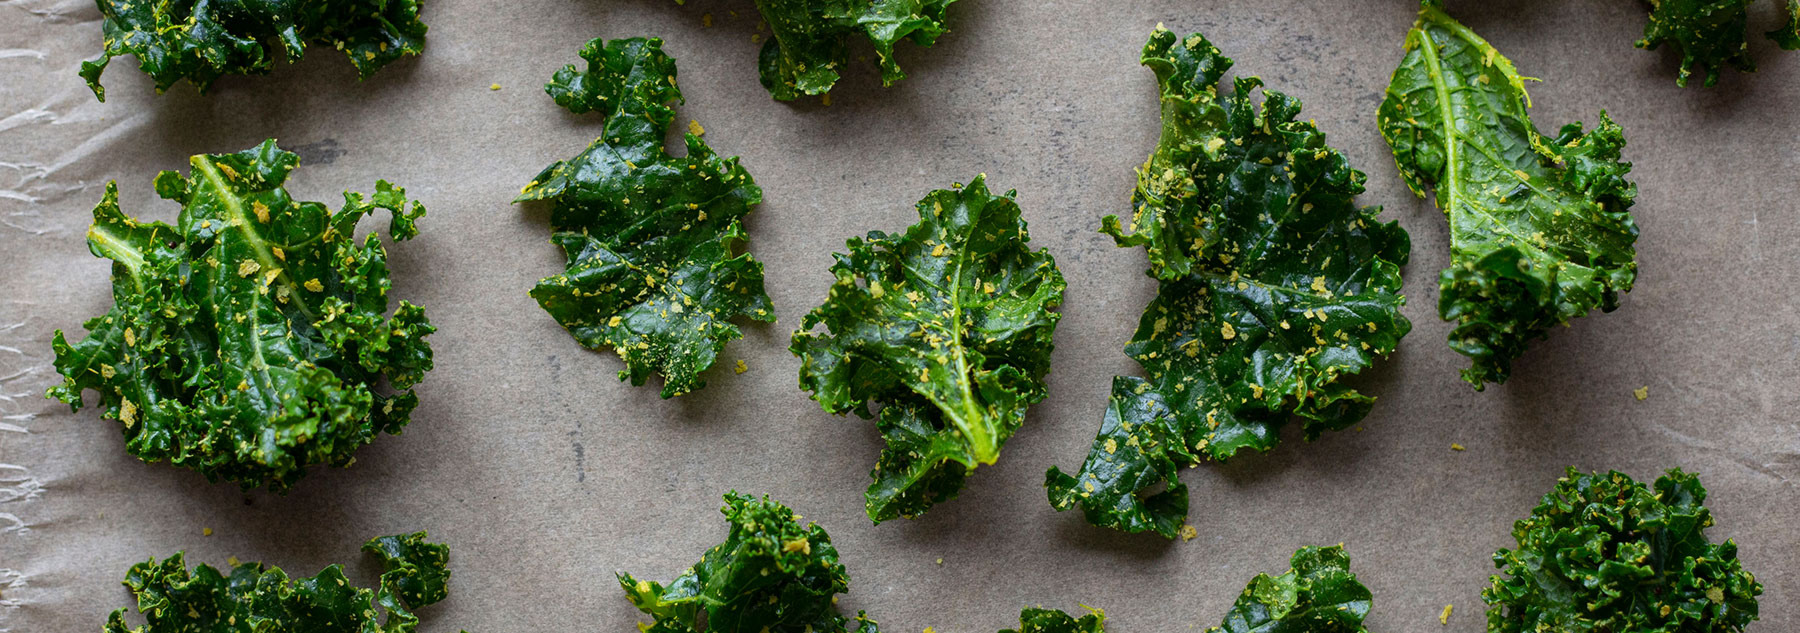 Cleanse-Friendly Kale Chips Recipe with Kitchari Spice Mix